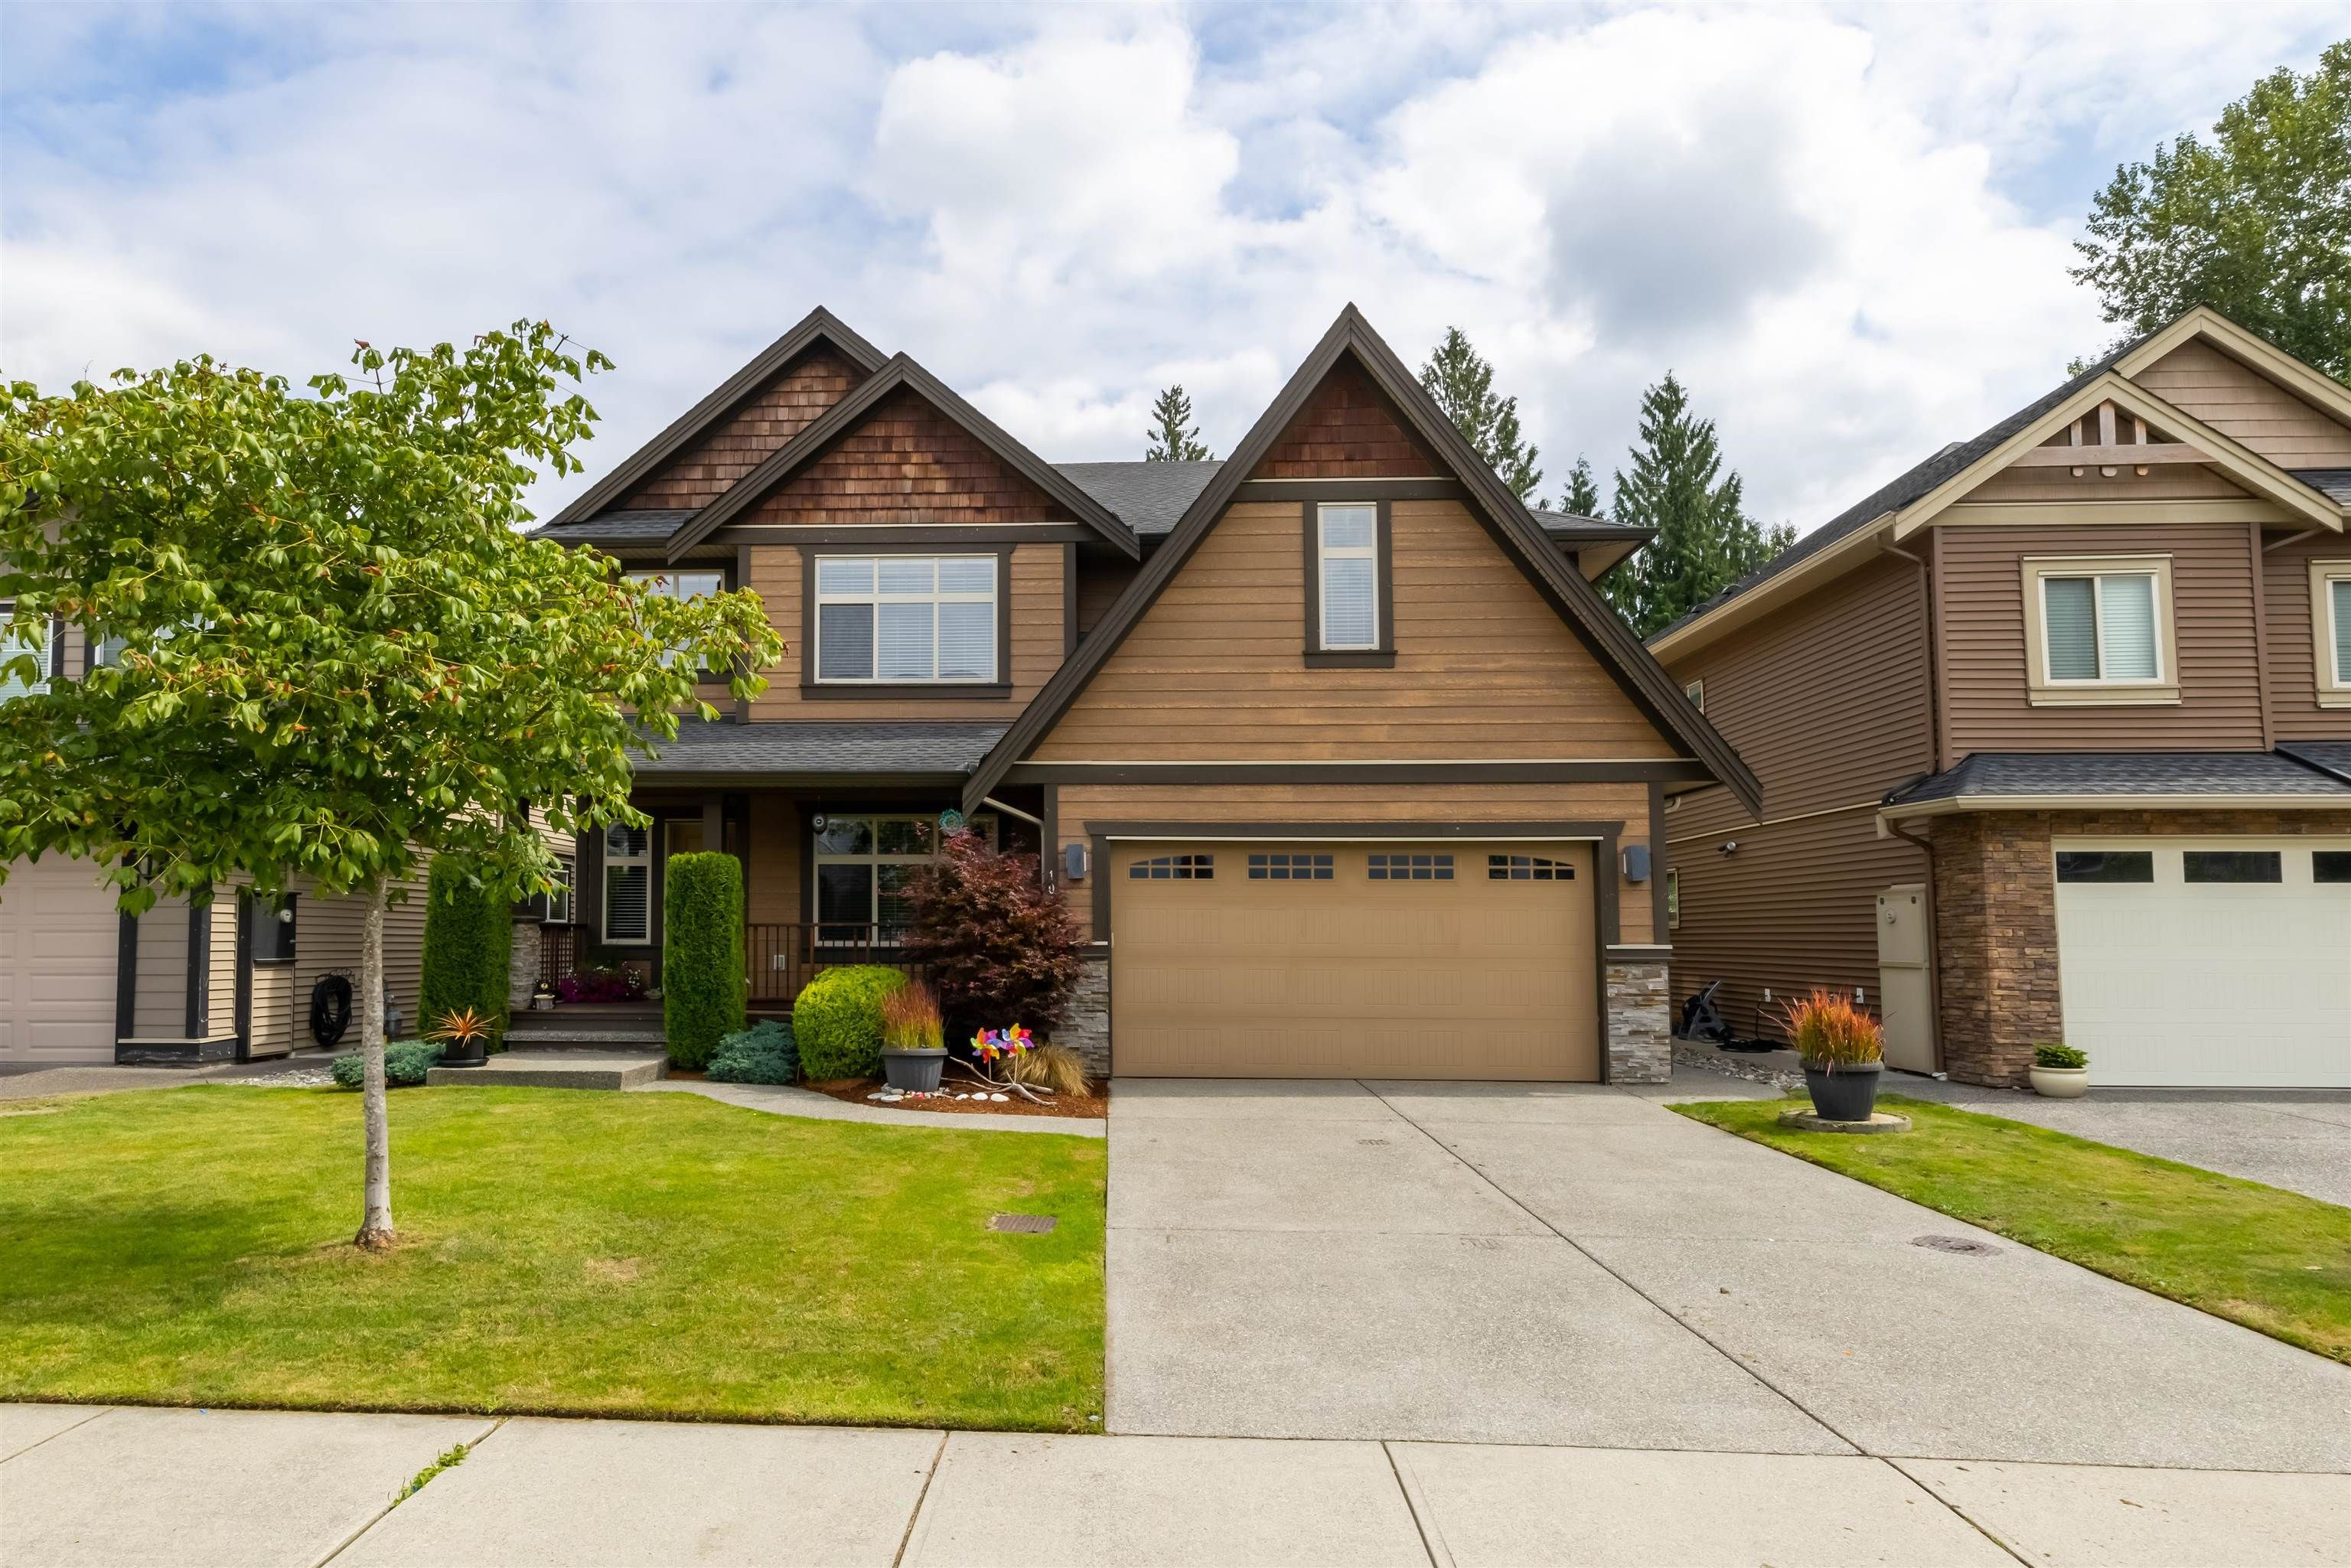 Photo 2: Photos: 10380 SLATFORD Place in Maple Ridge: Albion House for sale : MLS®# R2612387